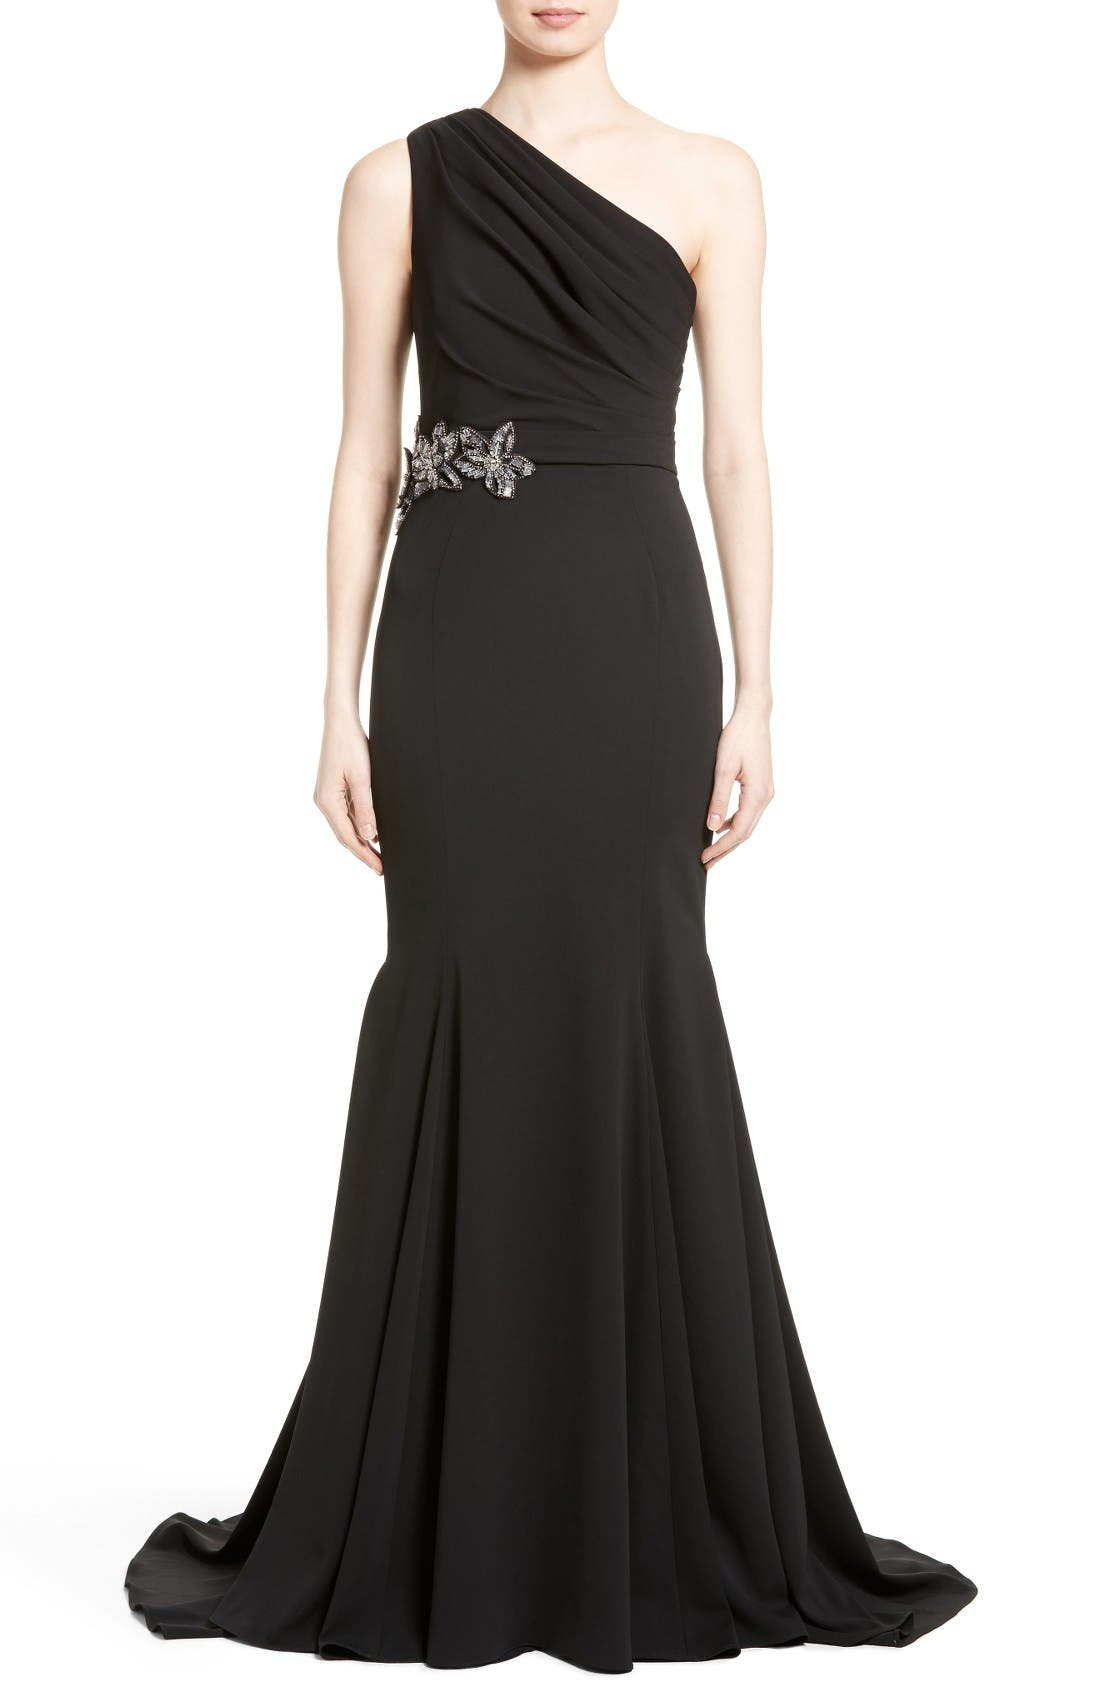 Badgley Mischka Couture Odessa Embellished One-Shoulder Gown,                             Main thumbnail 1, color,                             Black